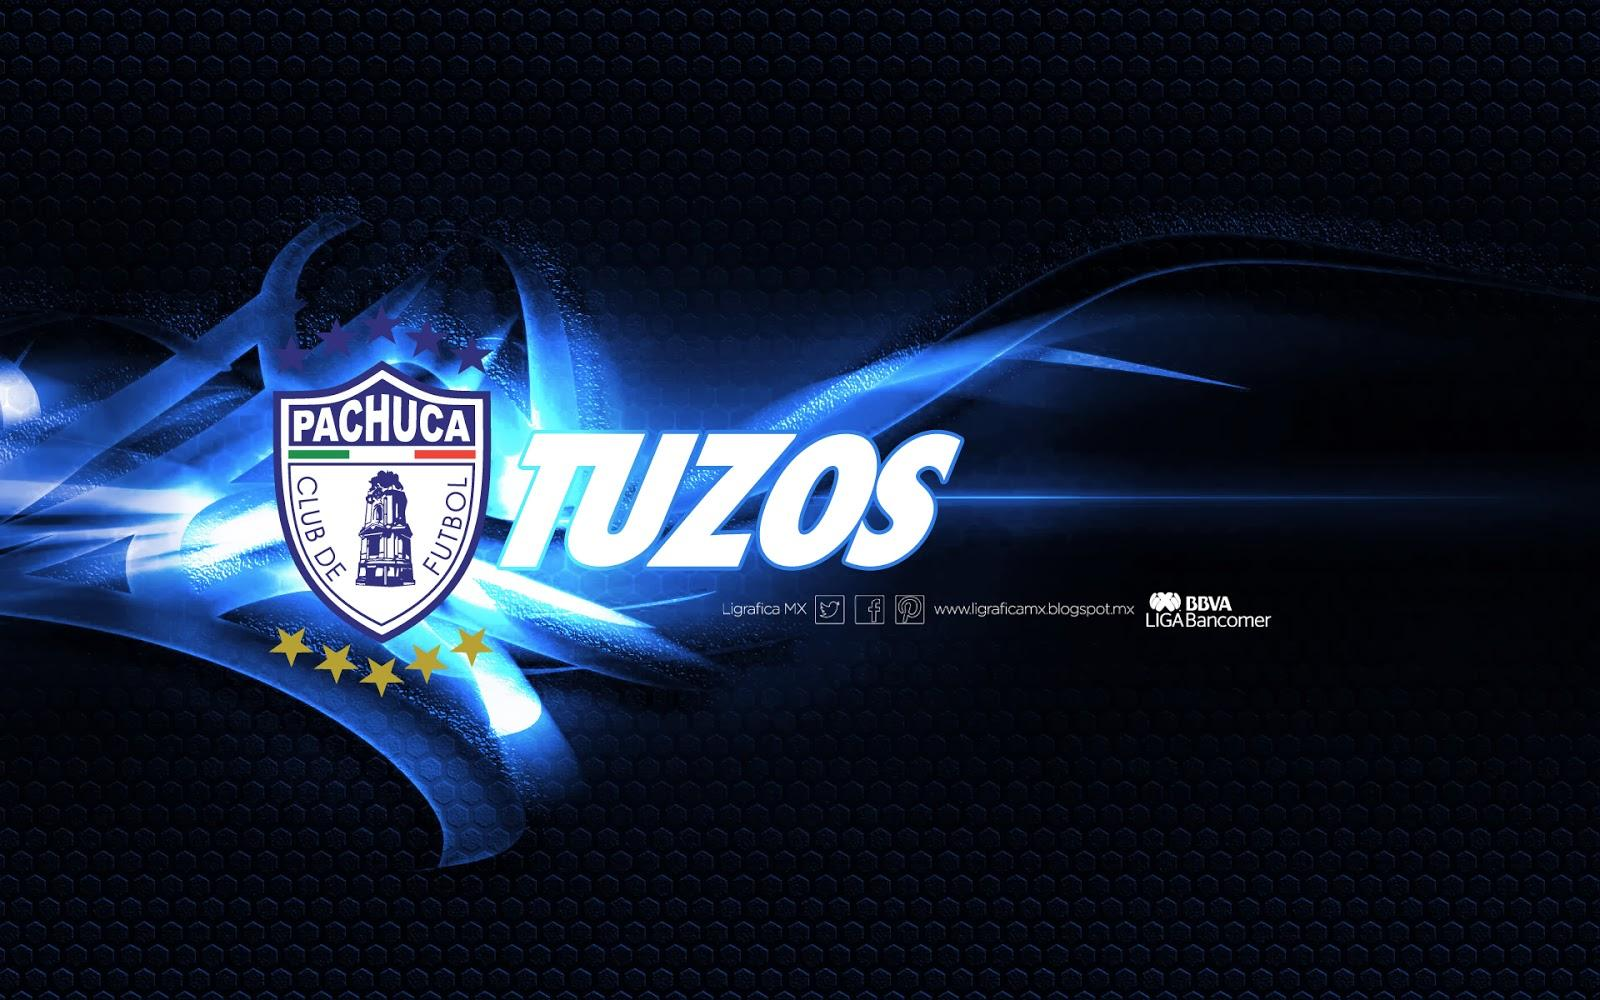 Pachuca Fc Related Keywords & Suggestions